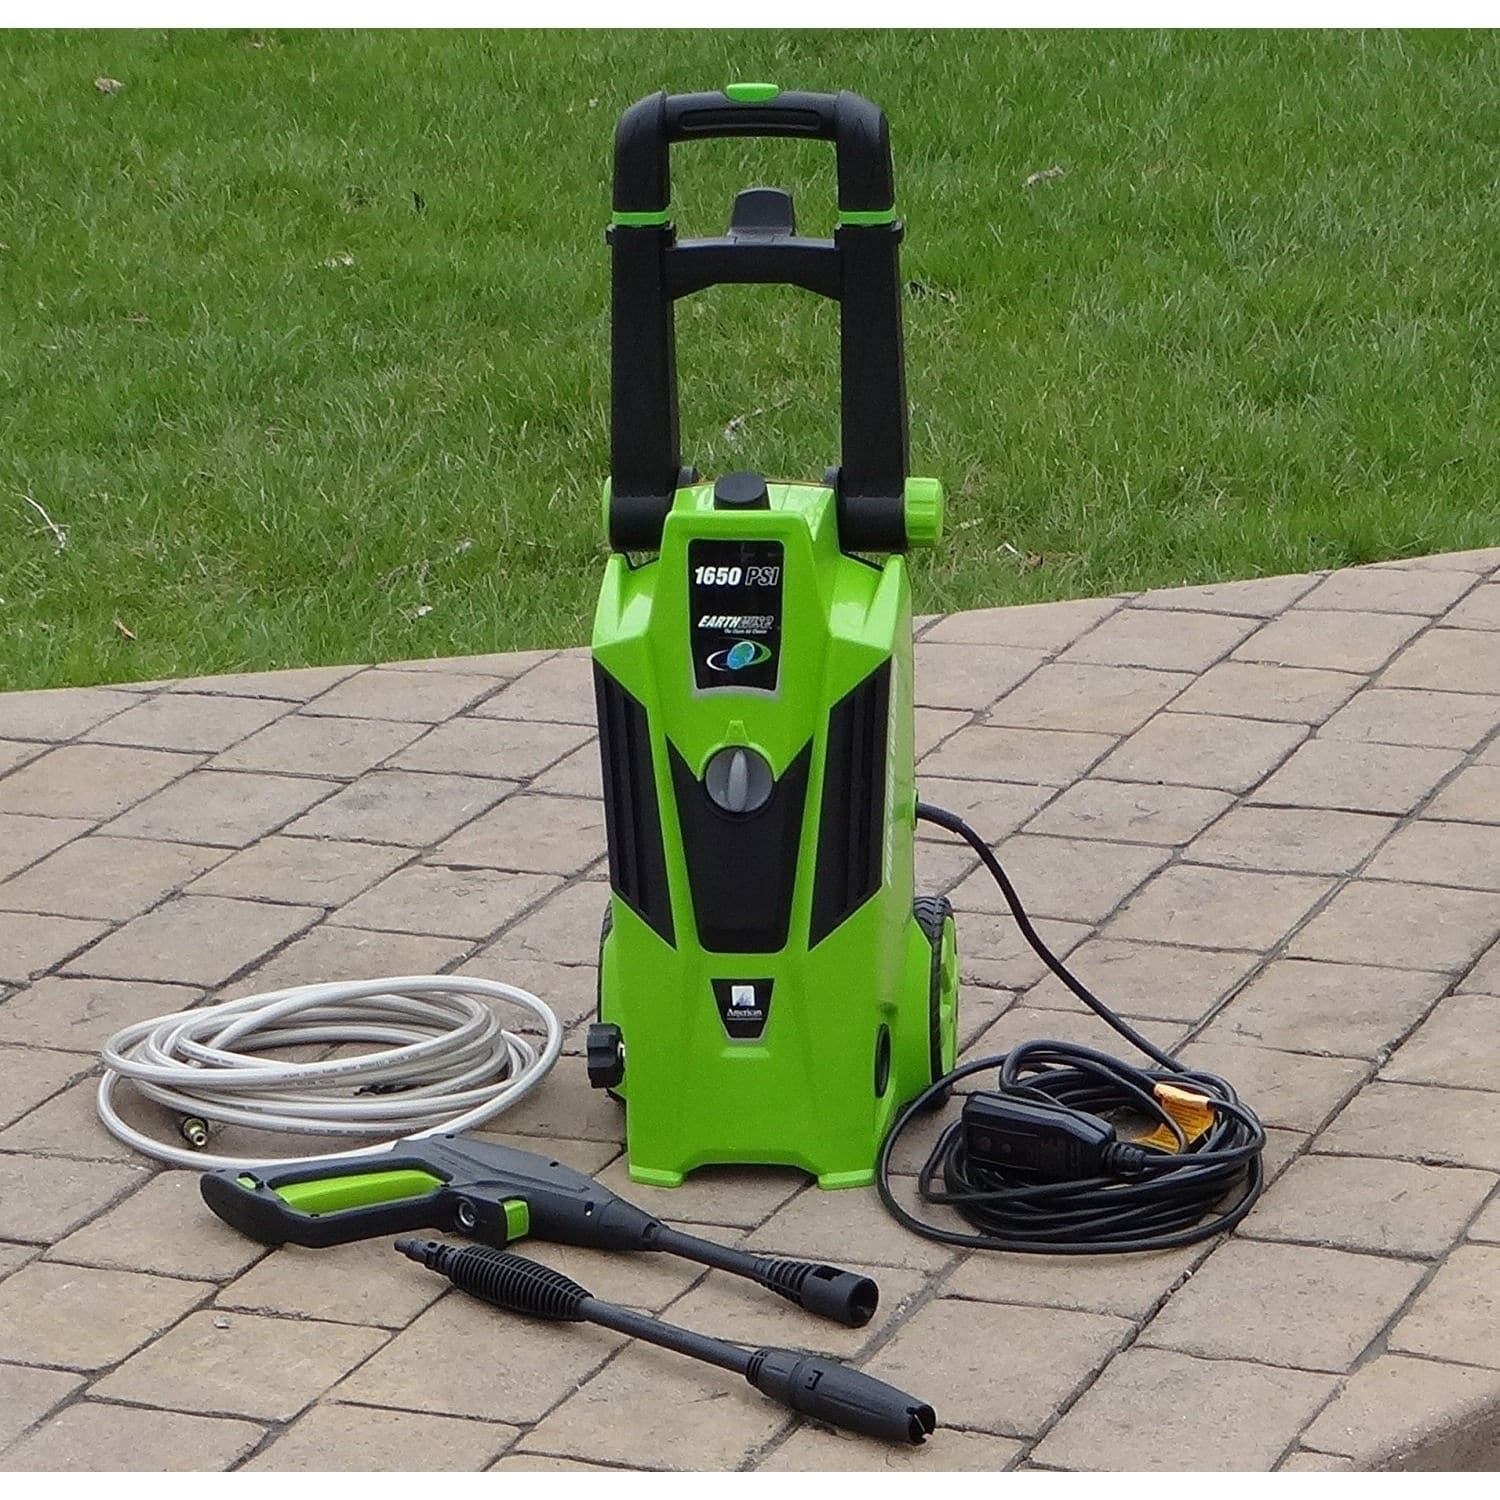 Esselte Electric Pressure Washer, 1650 PSI with Dual Oper...